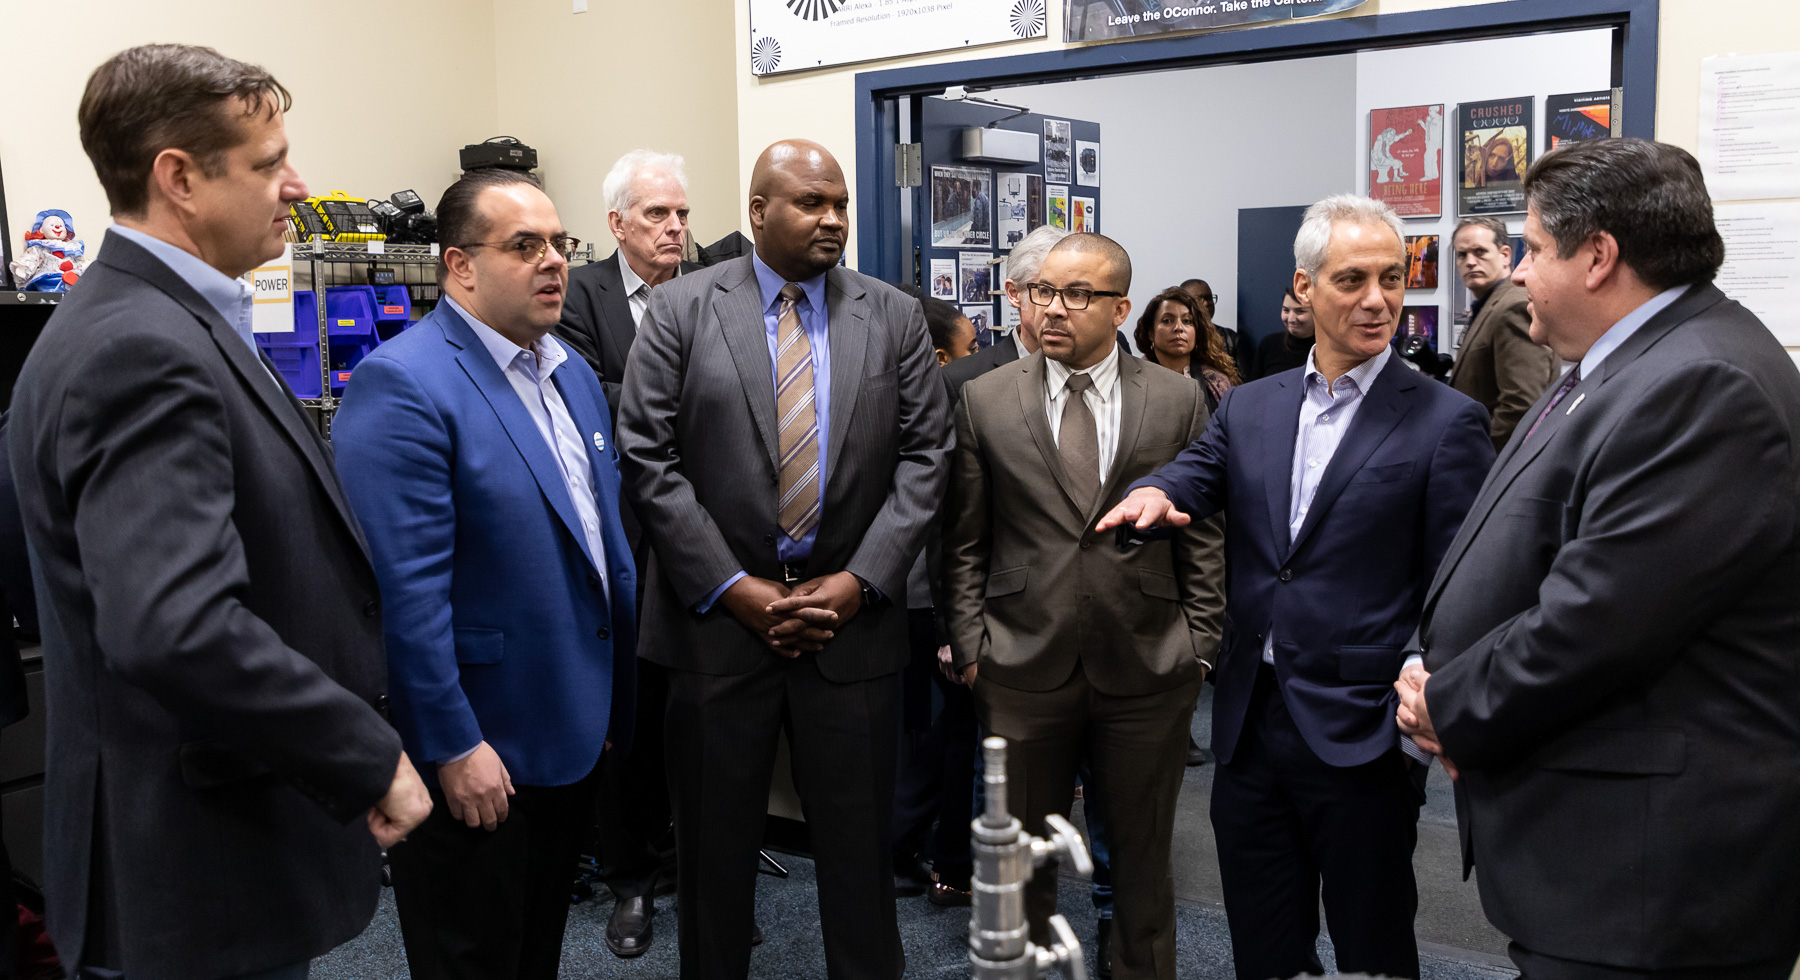 Left to right, John Corba, Alex Pissios, Elgie R. Sims, Jr. (D-Chicago), Ald. Michael Scott Jr. (24th), Chicago Mayor Rahm Emanuel and Illinois Governor JB Pritzker visit Cinespace Chicago Film Studios and DePaul University's School of Cinematic Arts, Thursday, Feb. 28, 2019, to discuss the growth of Illinois' film, TV and media industry. (DePaul University/Jeff Carrion)